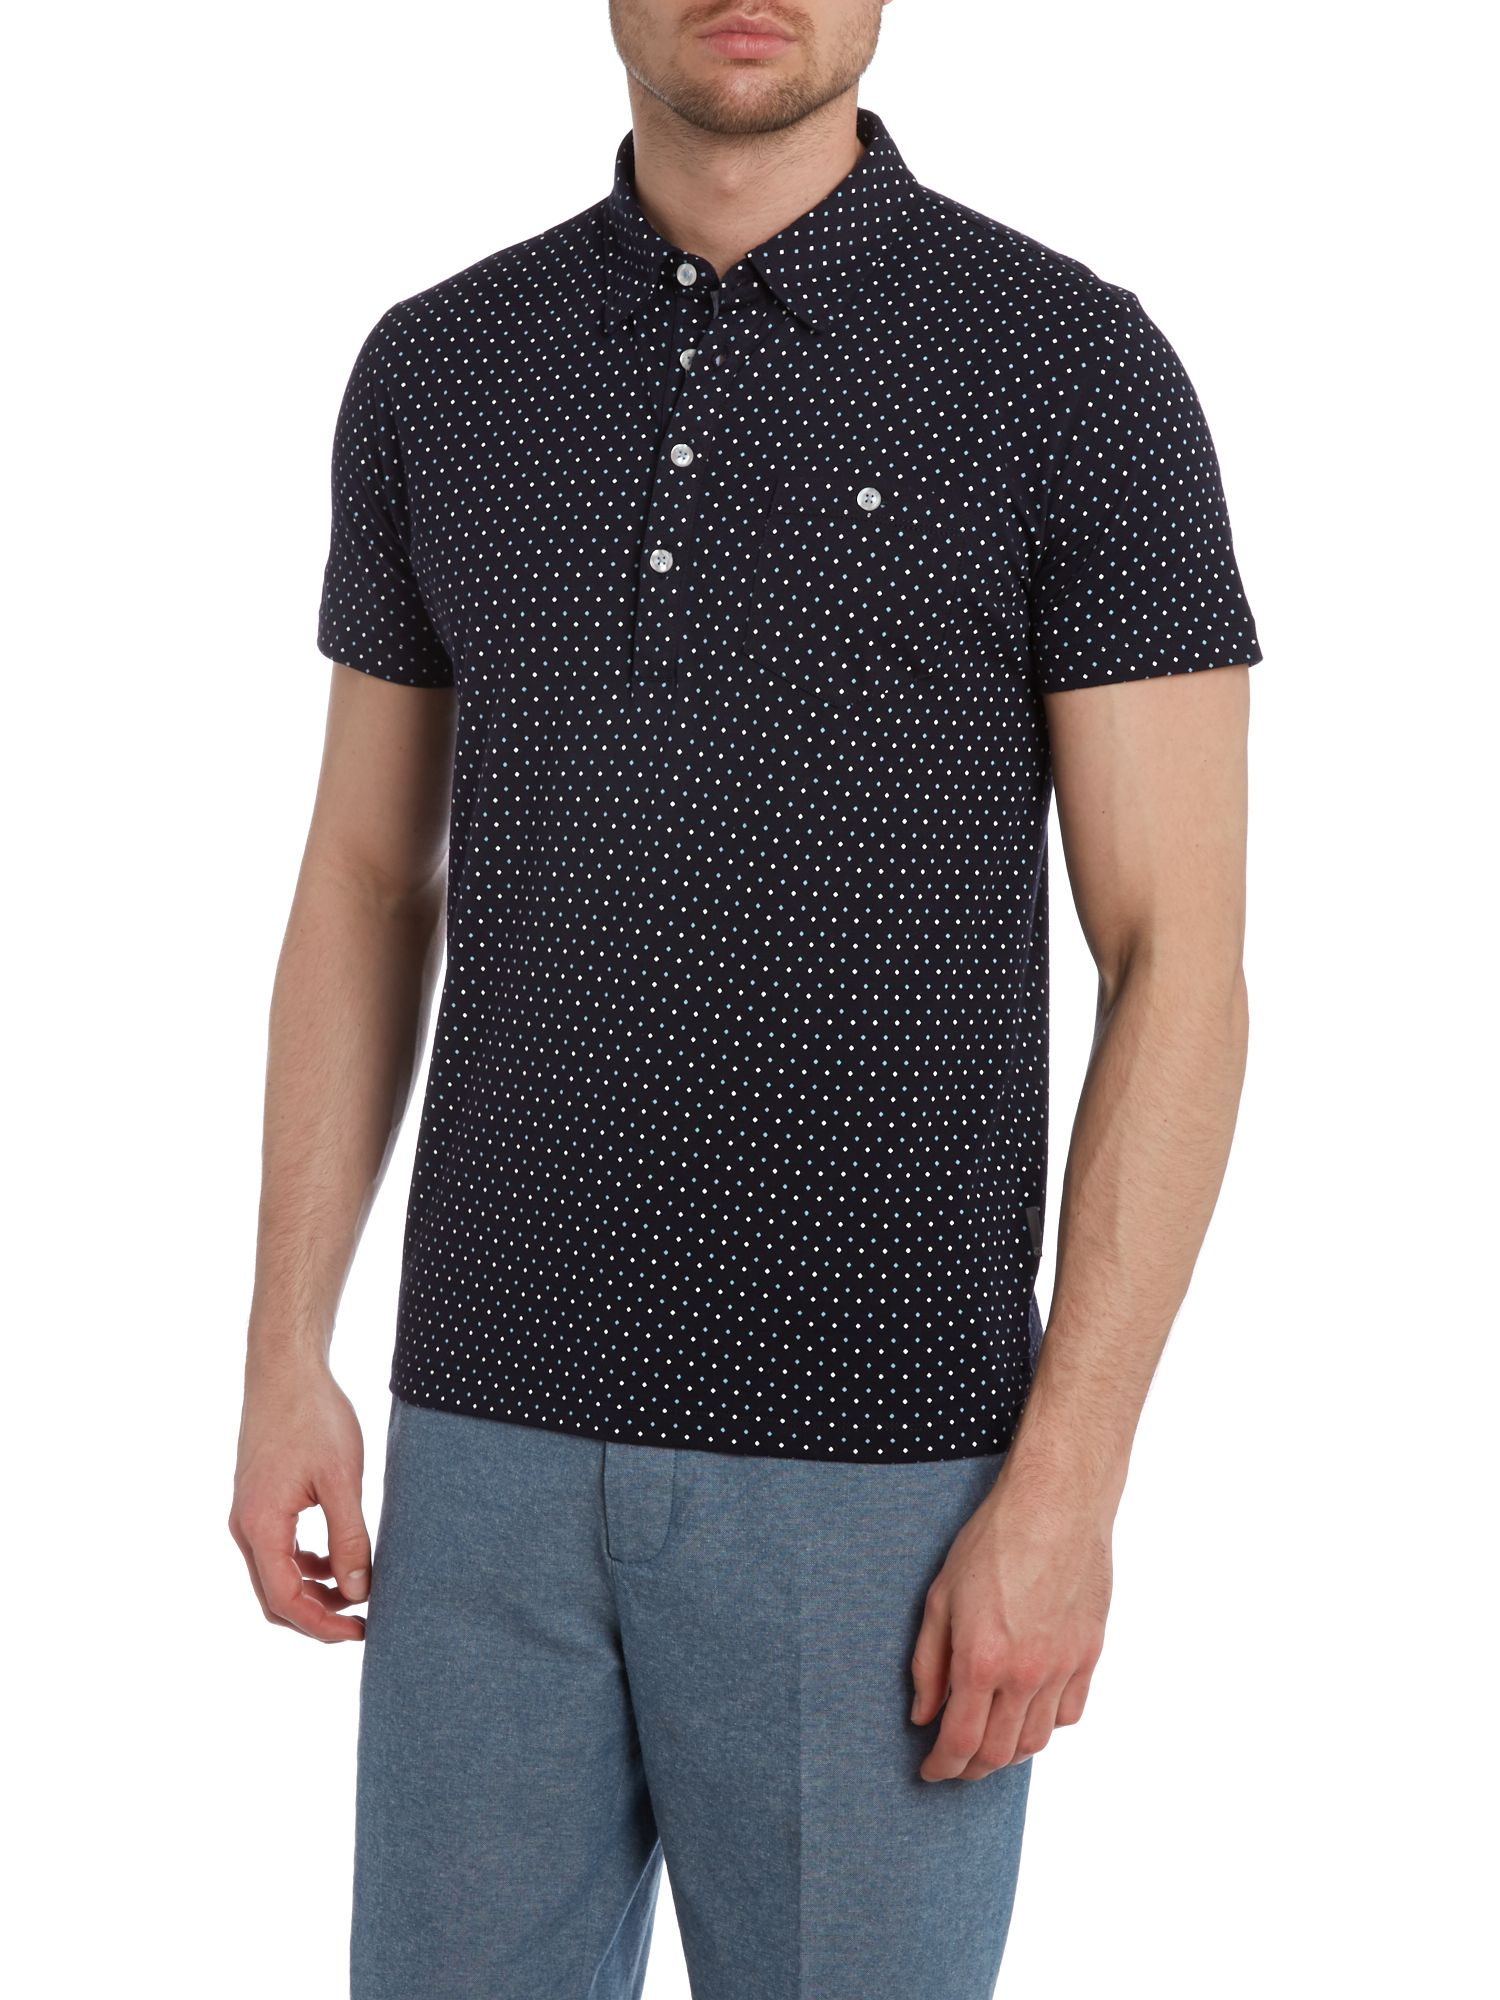 Ramon polo shirt